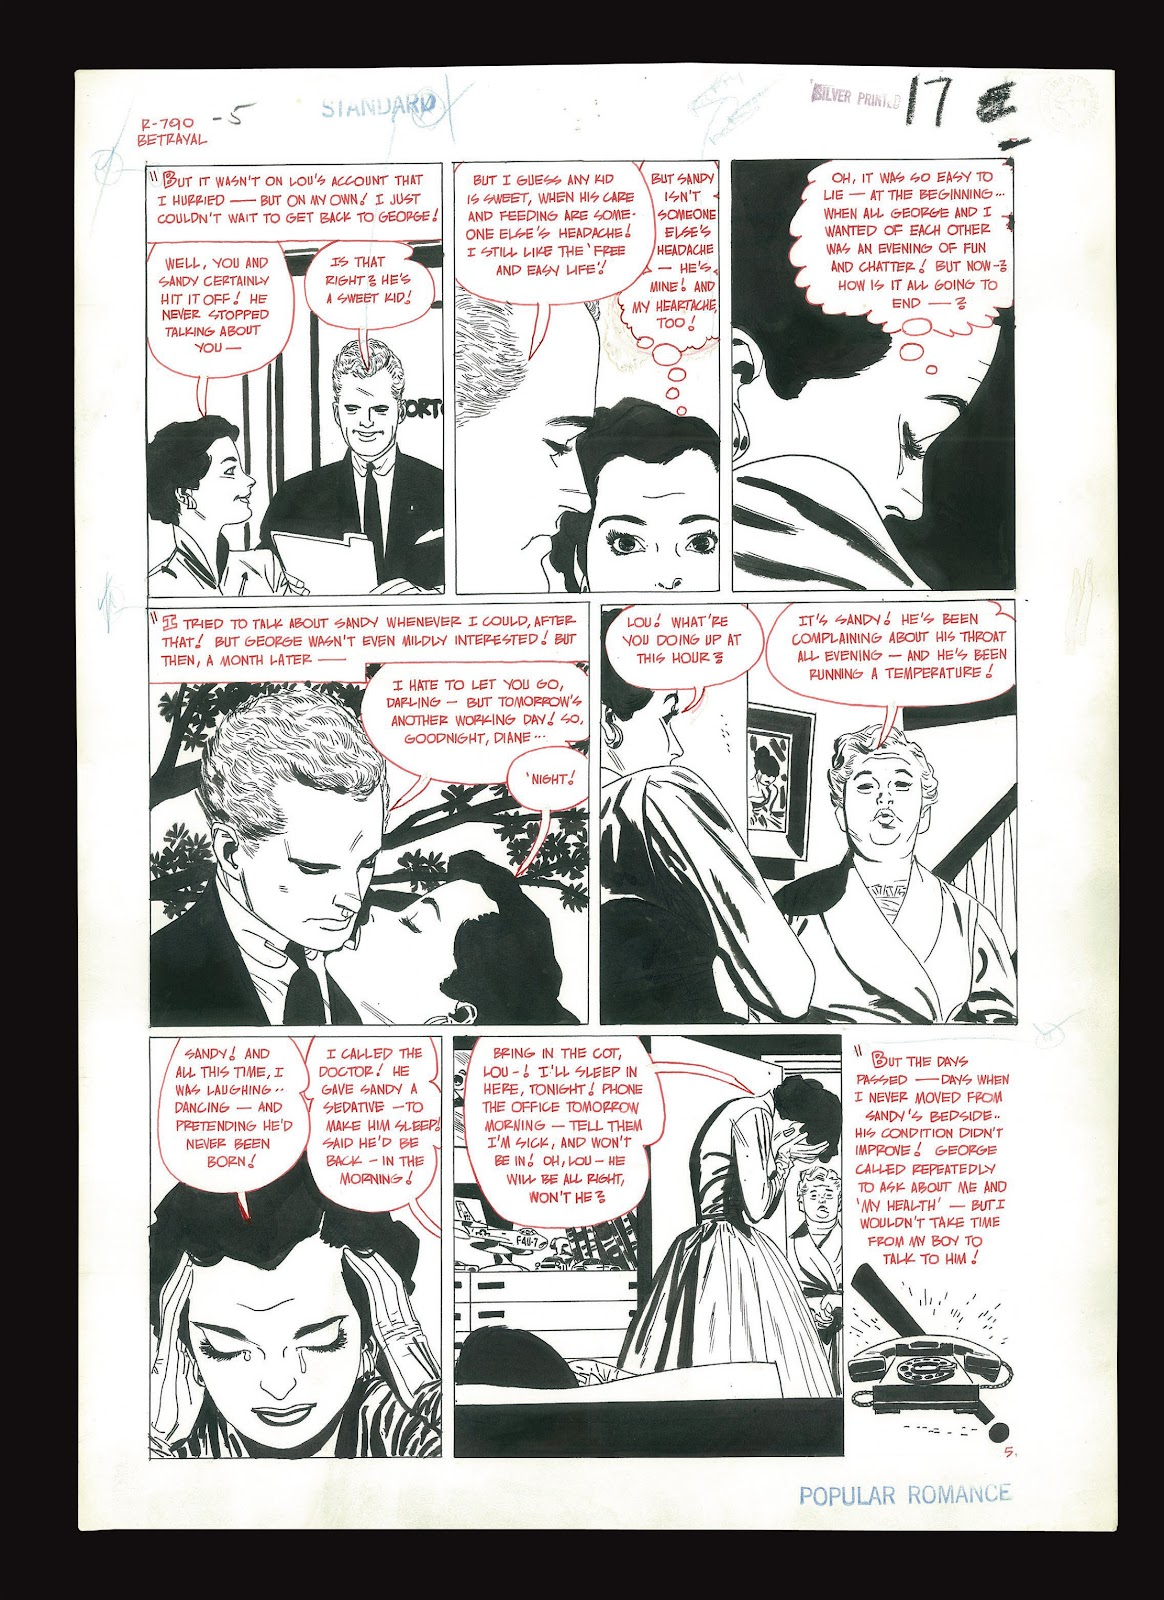 Read online Setting the Standard: Comics by Alex Toth 1952-1954 comic -  Issue # TPB (Part 4) - 122